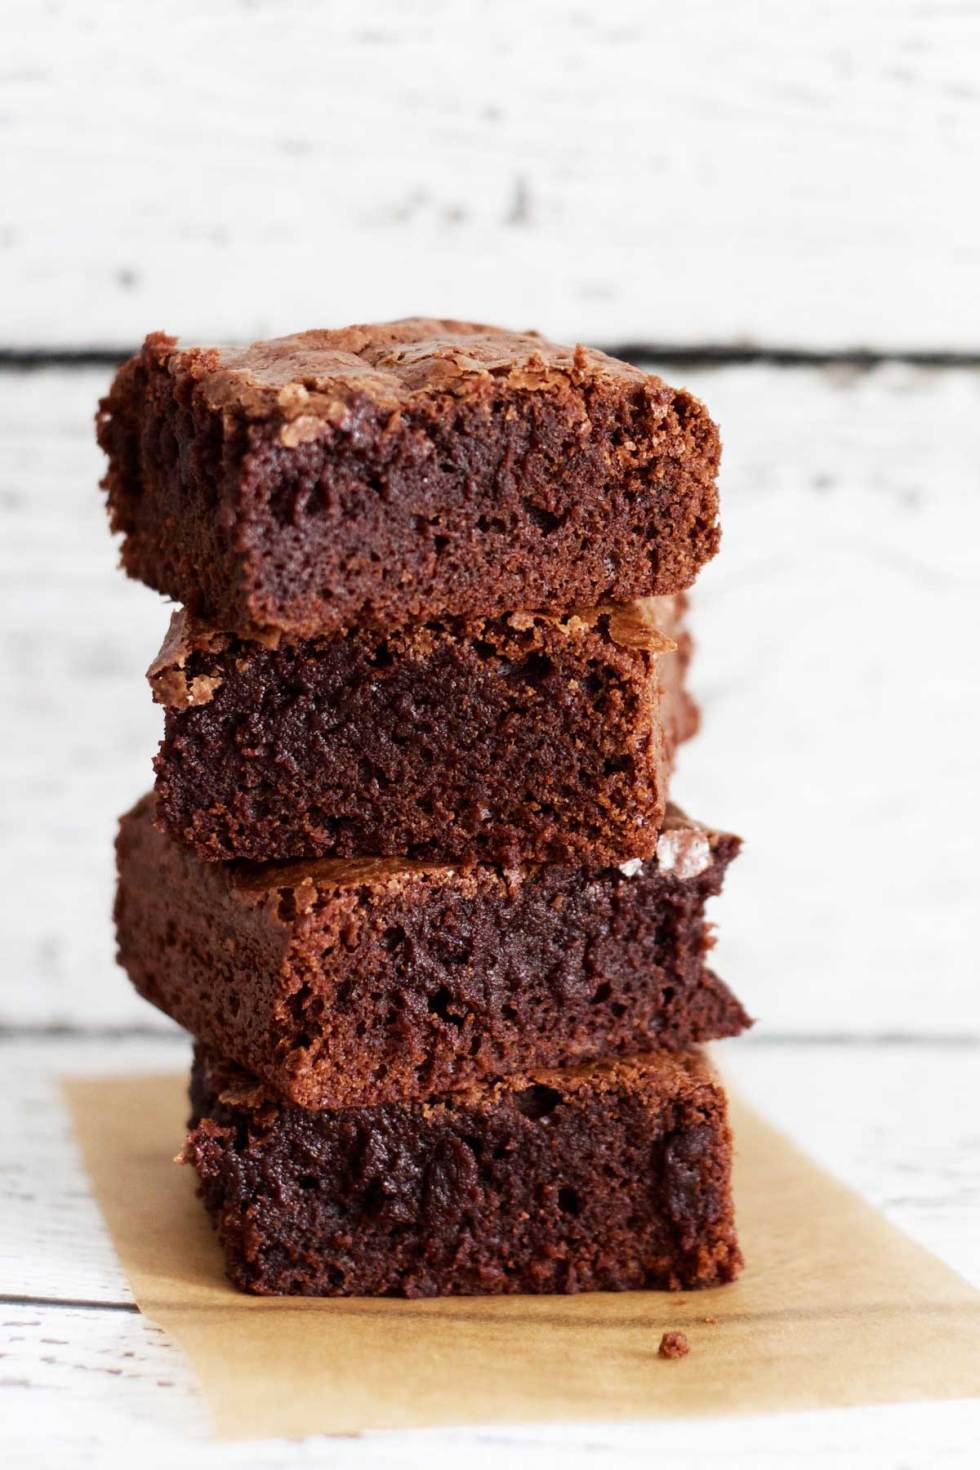 Simply Fudgy Brownies - These brownies are rich, dense, and fudgy with a slight crunch from the top and edges, but the inside is soft, dark, and baked-until-just-barely set.